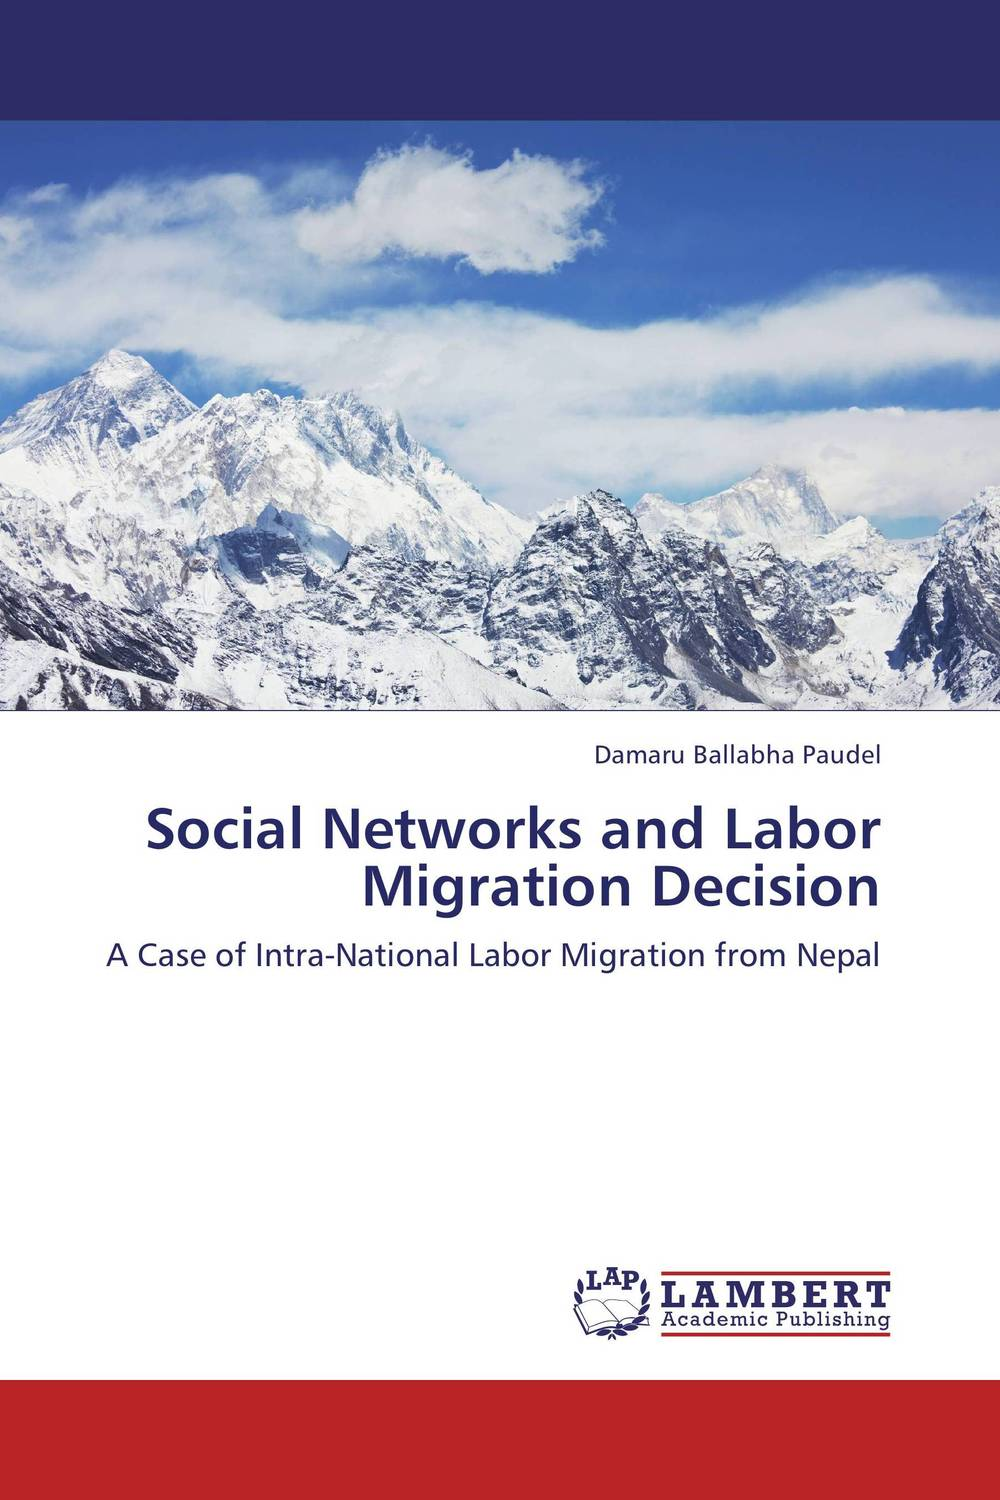 Social Networks and Labor Migration Decision